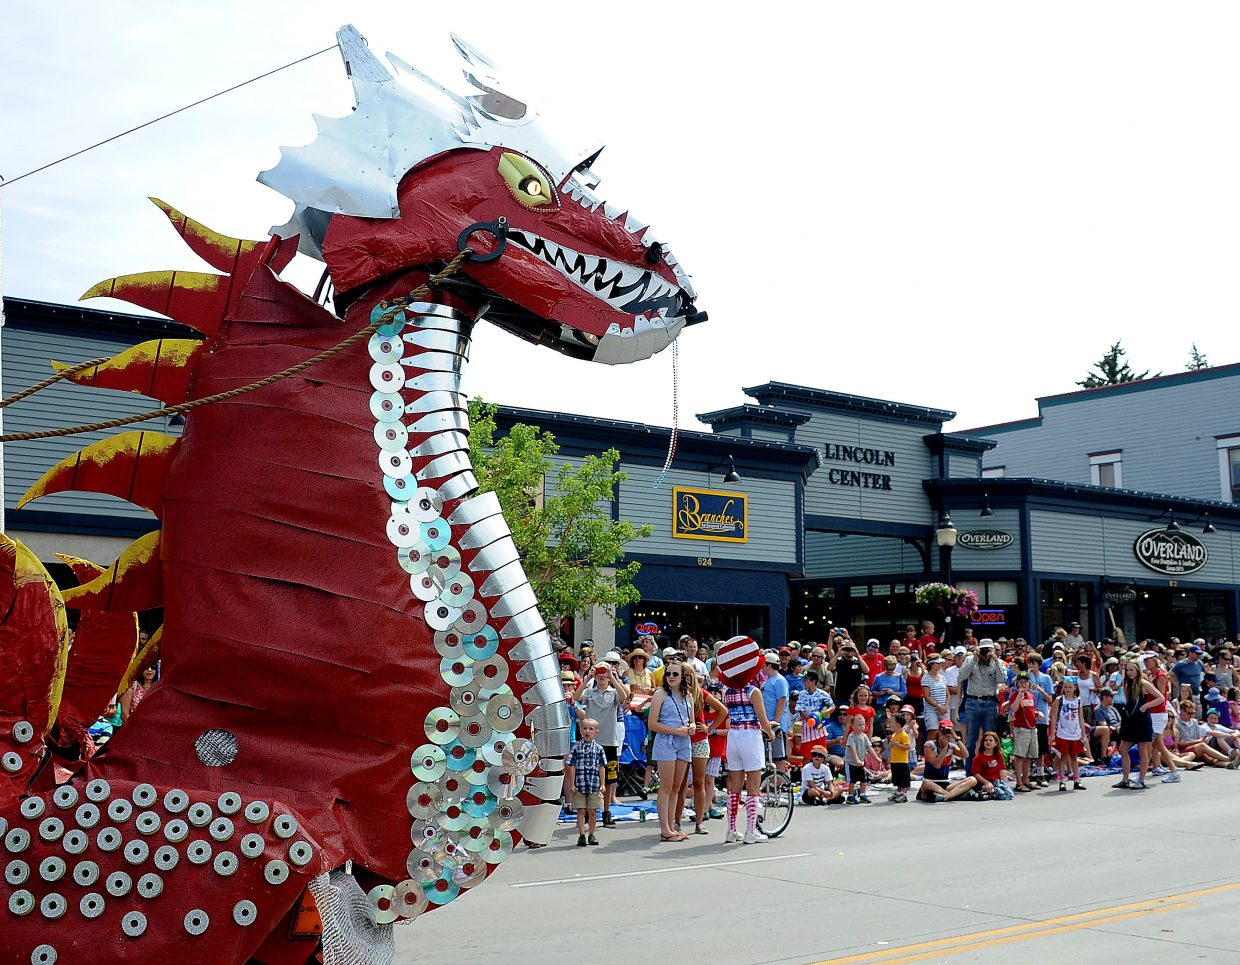 The no-fire-breathing regulation didn't keep the dragons from Wednesday's Fourth of July parade in downtown Steamboat Springs.